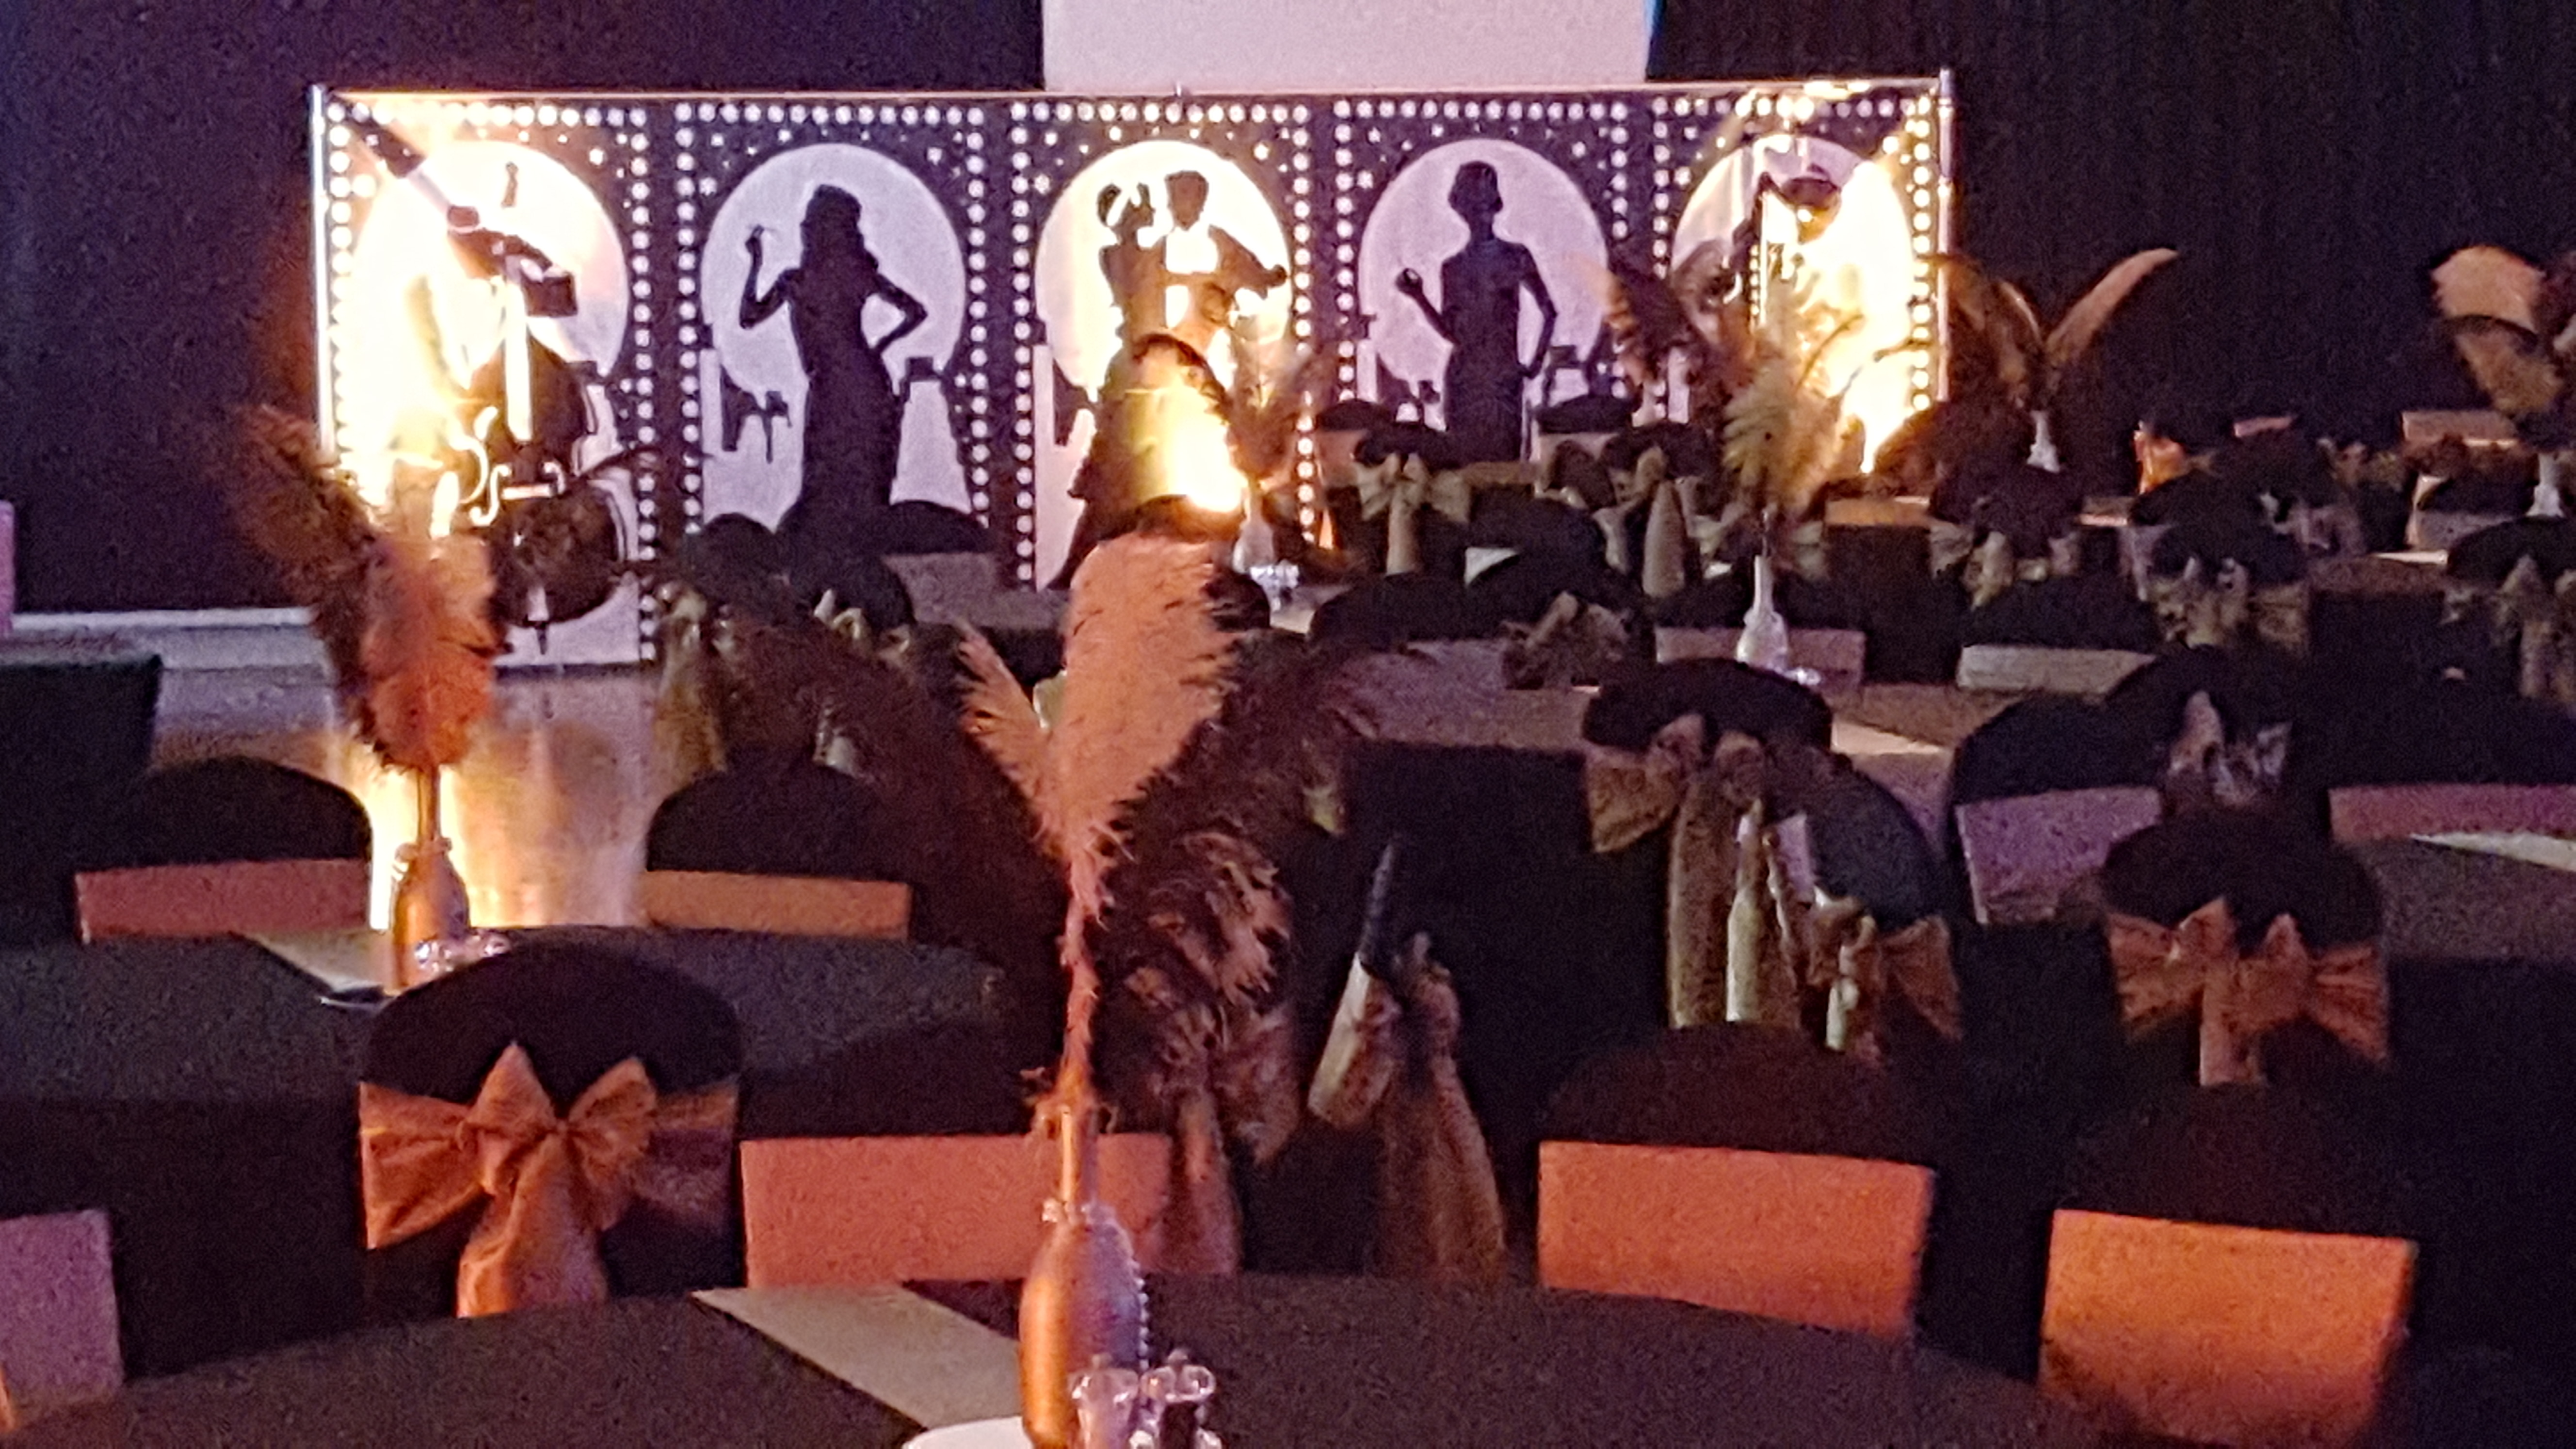 1920s Theme Party | The Great Gatsby Theme Party | Ace Tones